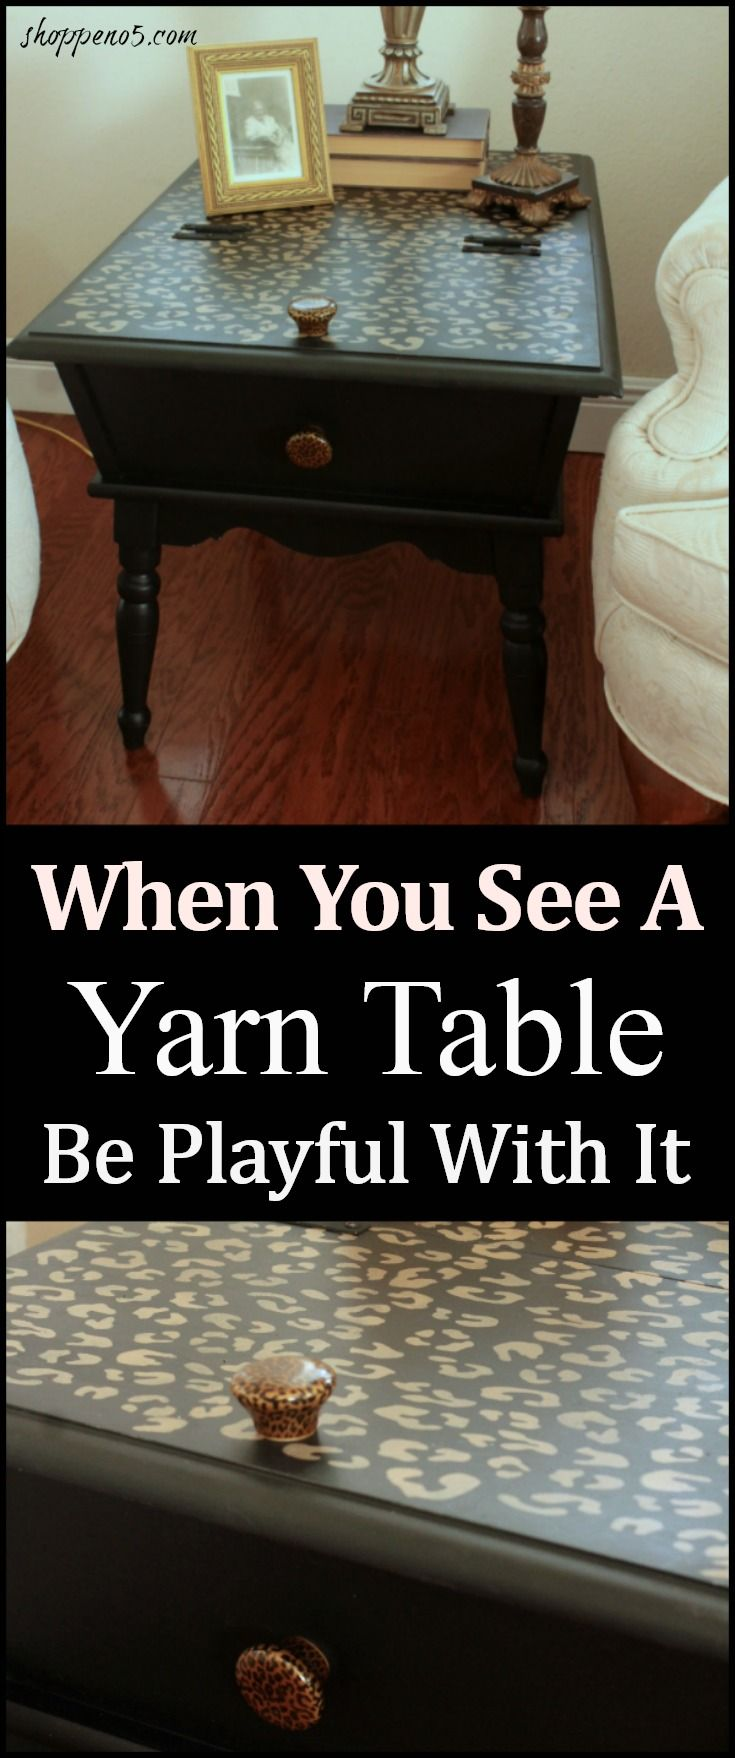 Have you seen the yarn tables from the '60's or 70's?  Several years ago my friend found one and had it brought to me.  Ever since then whenever I see one I have to buy it.  It has been over a year since I have seen any in the local thrift stores.  Not too long ago I stopped at a nearby thrift store and there it was in all its brown glory.  My motto is when you see a yarn table be playful with it.